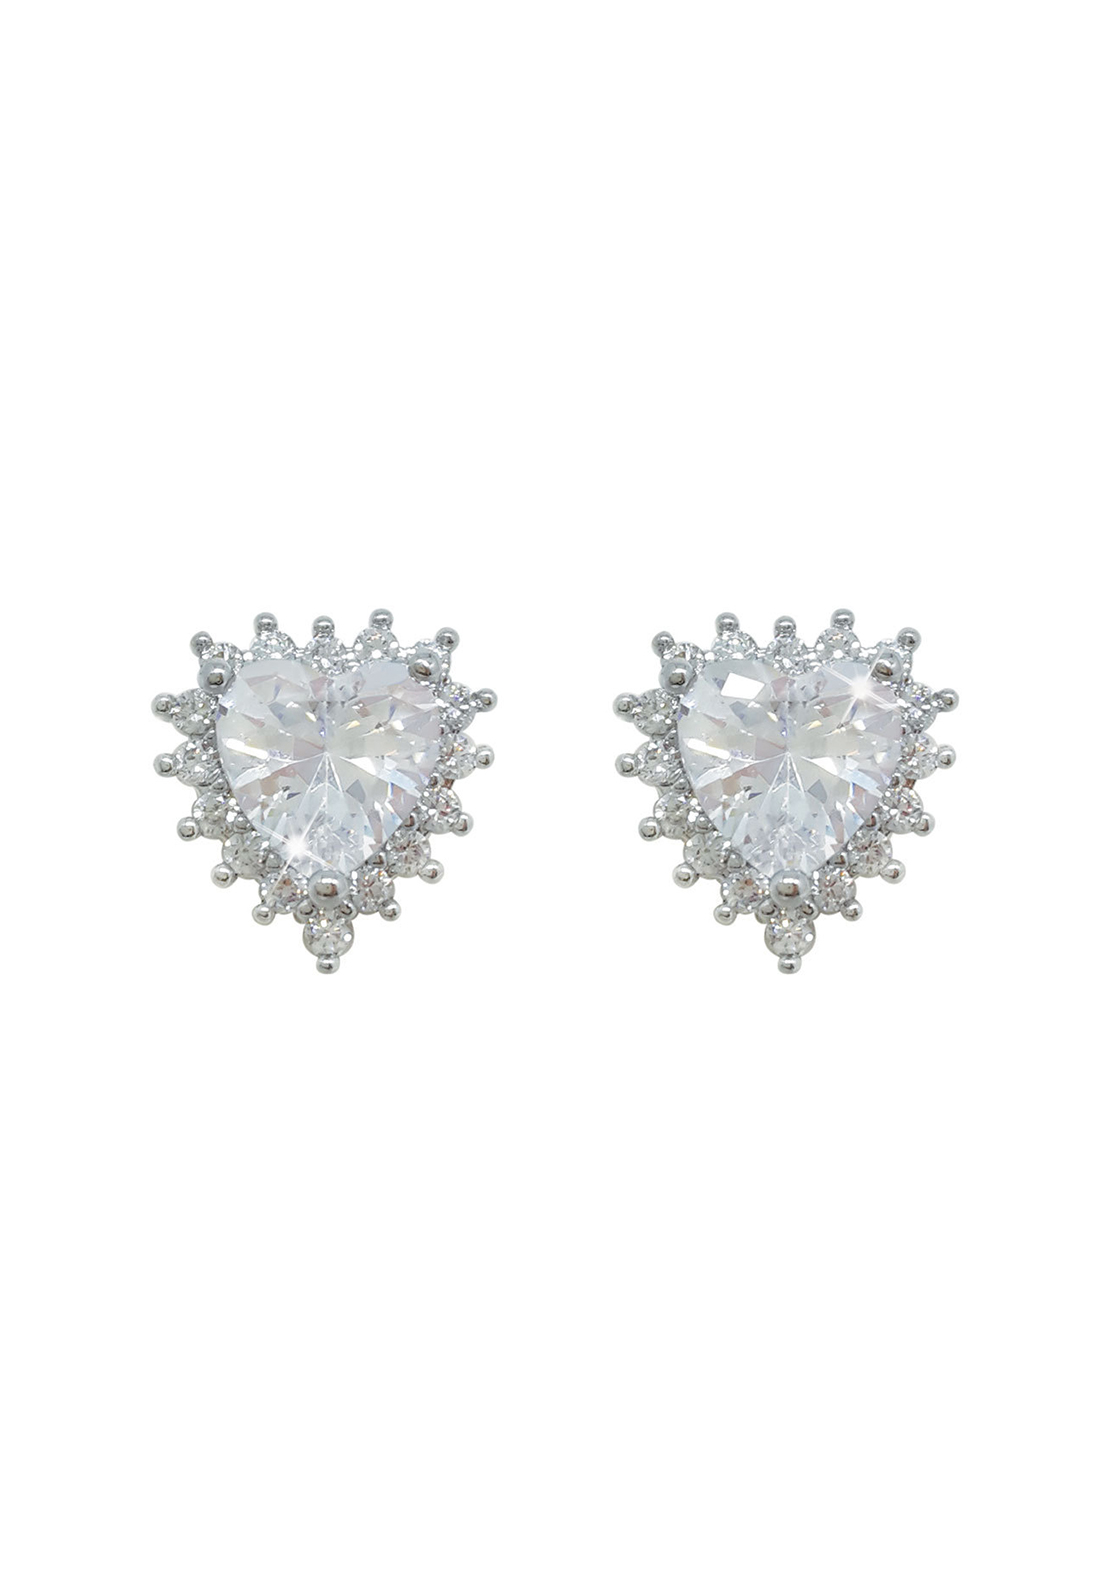 Tipperary Crystal Pave Heart Stud Earrings, Silver